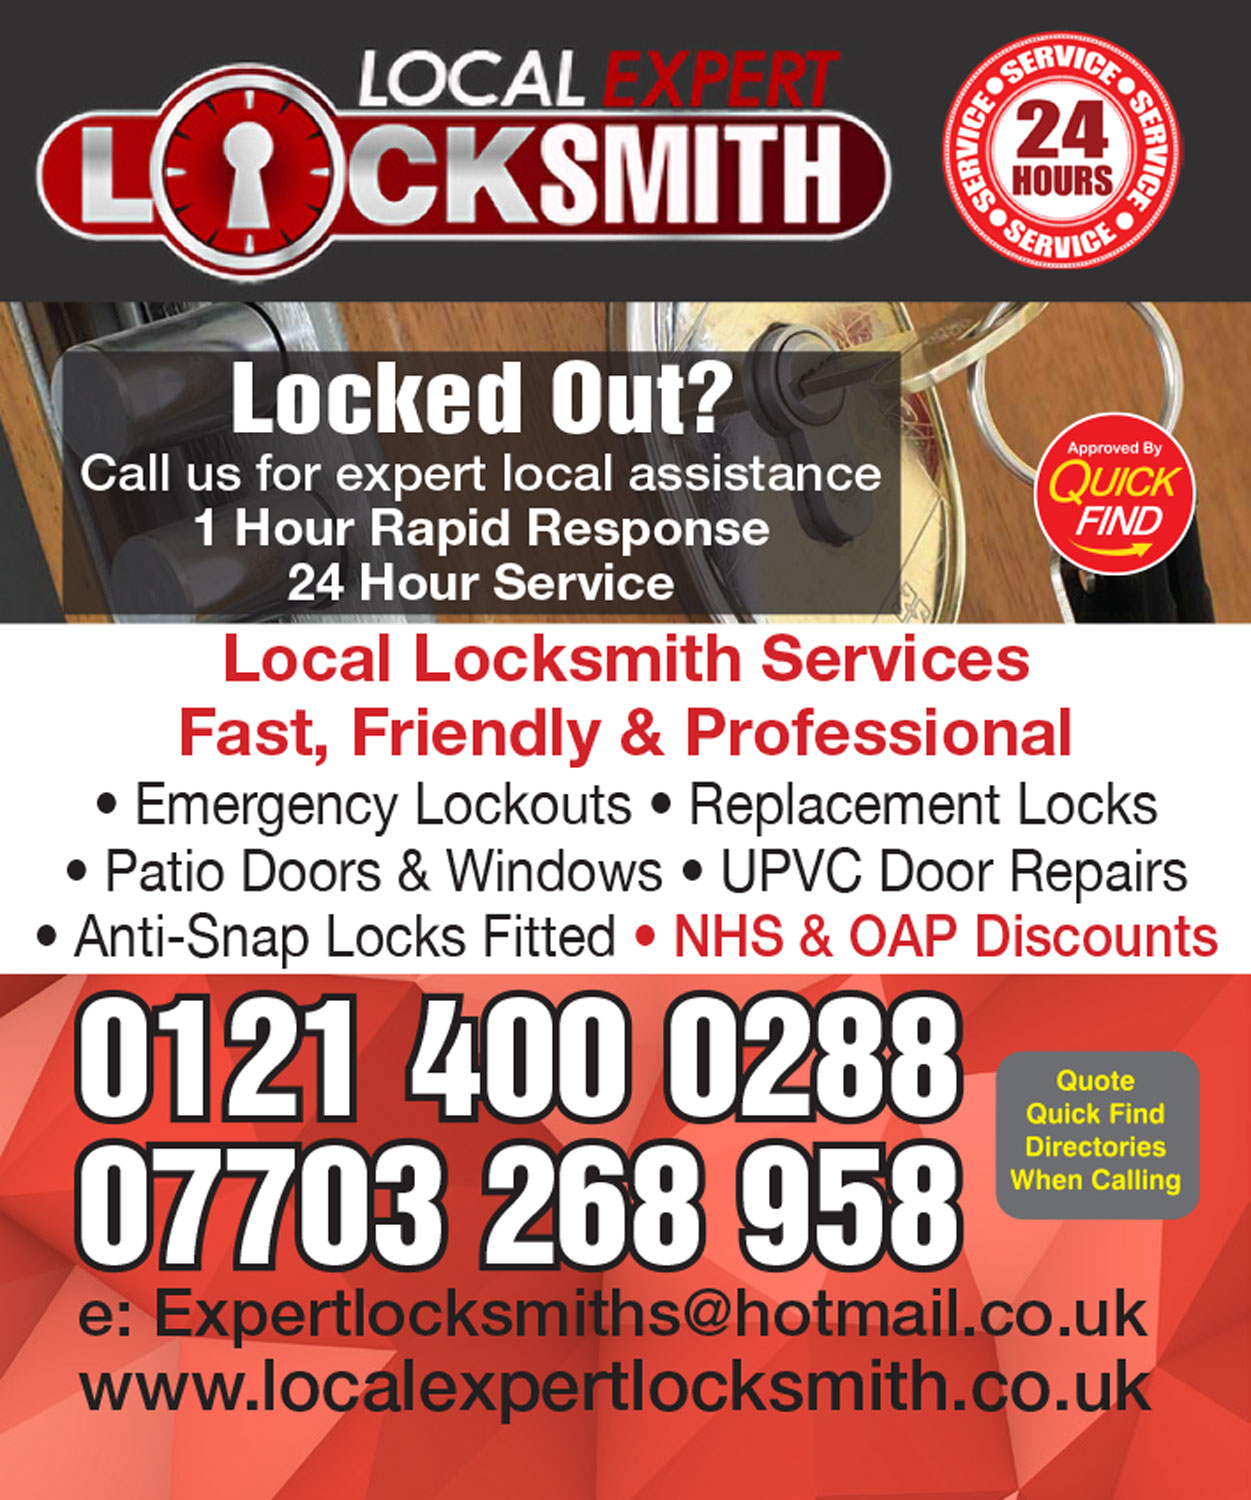 Local Expert Locksmith